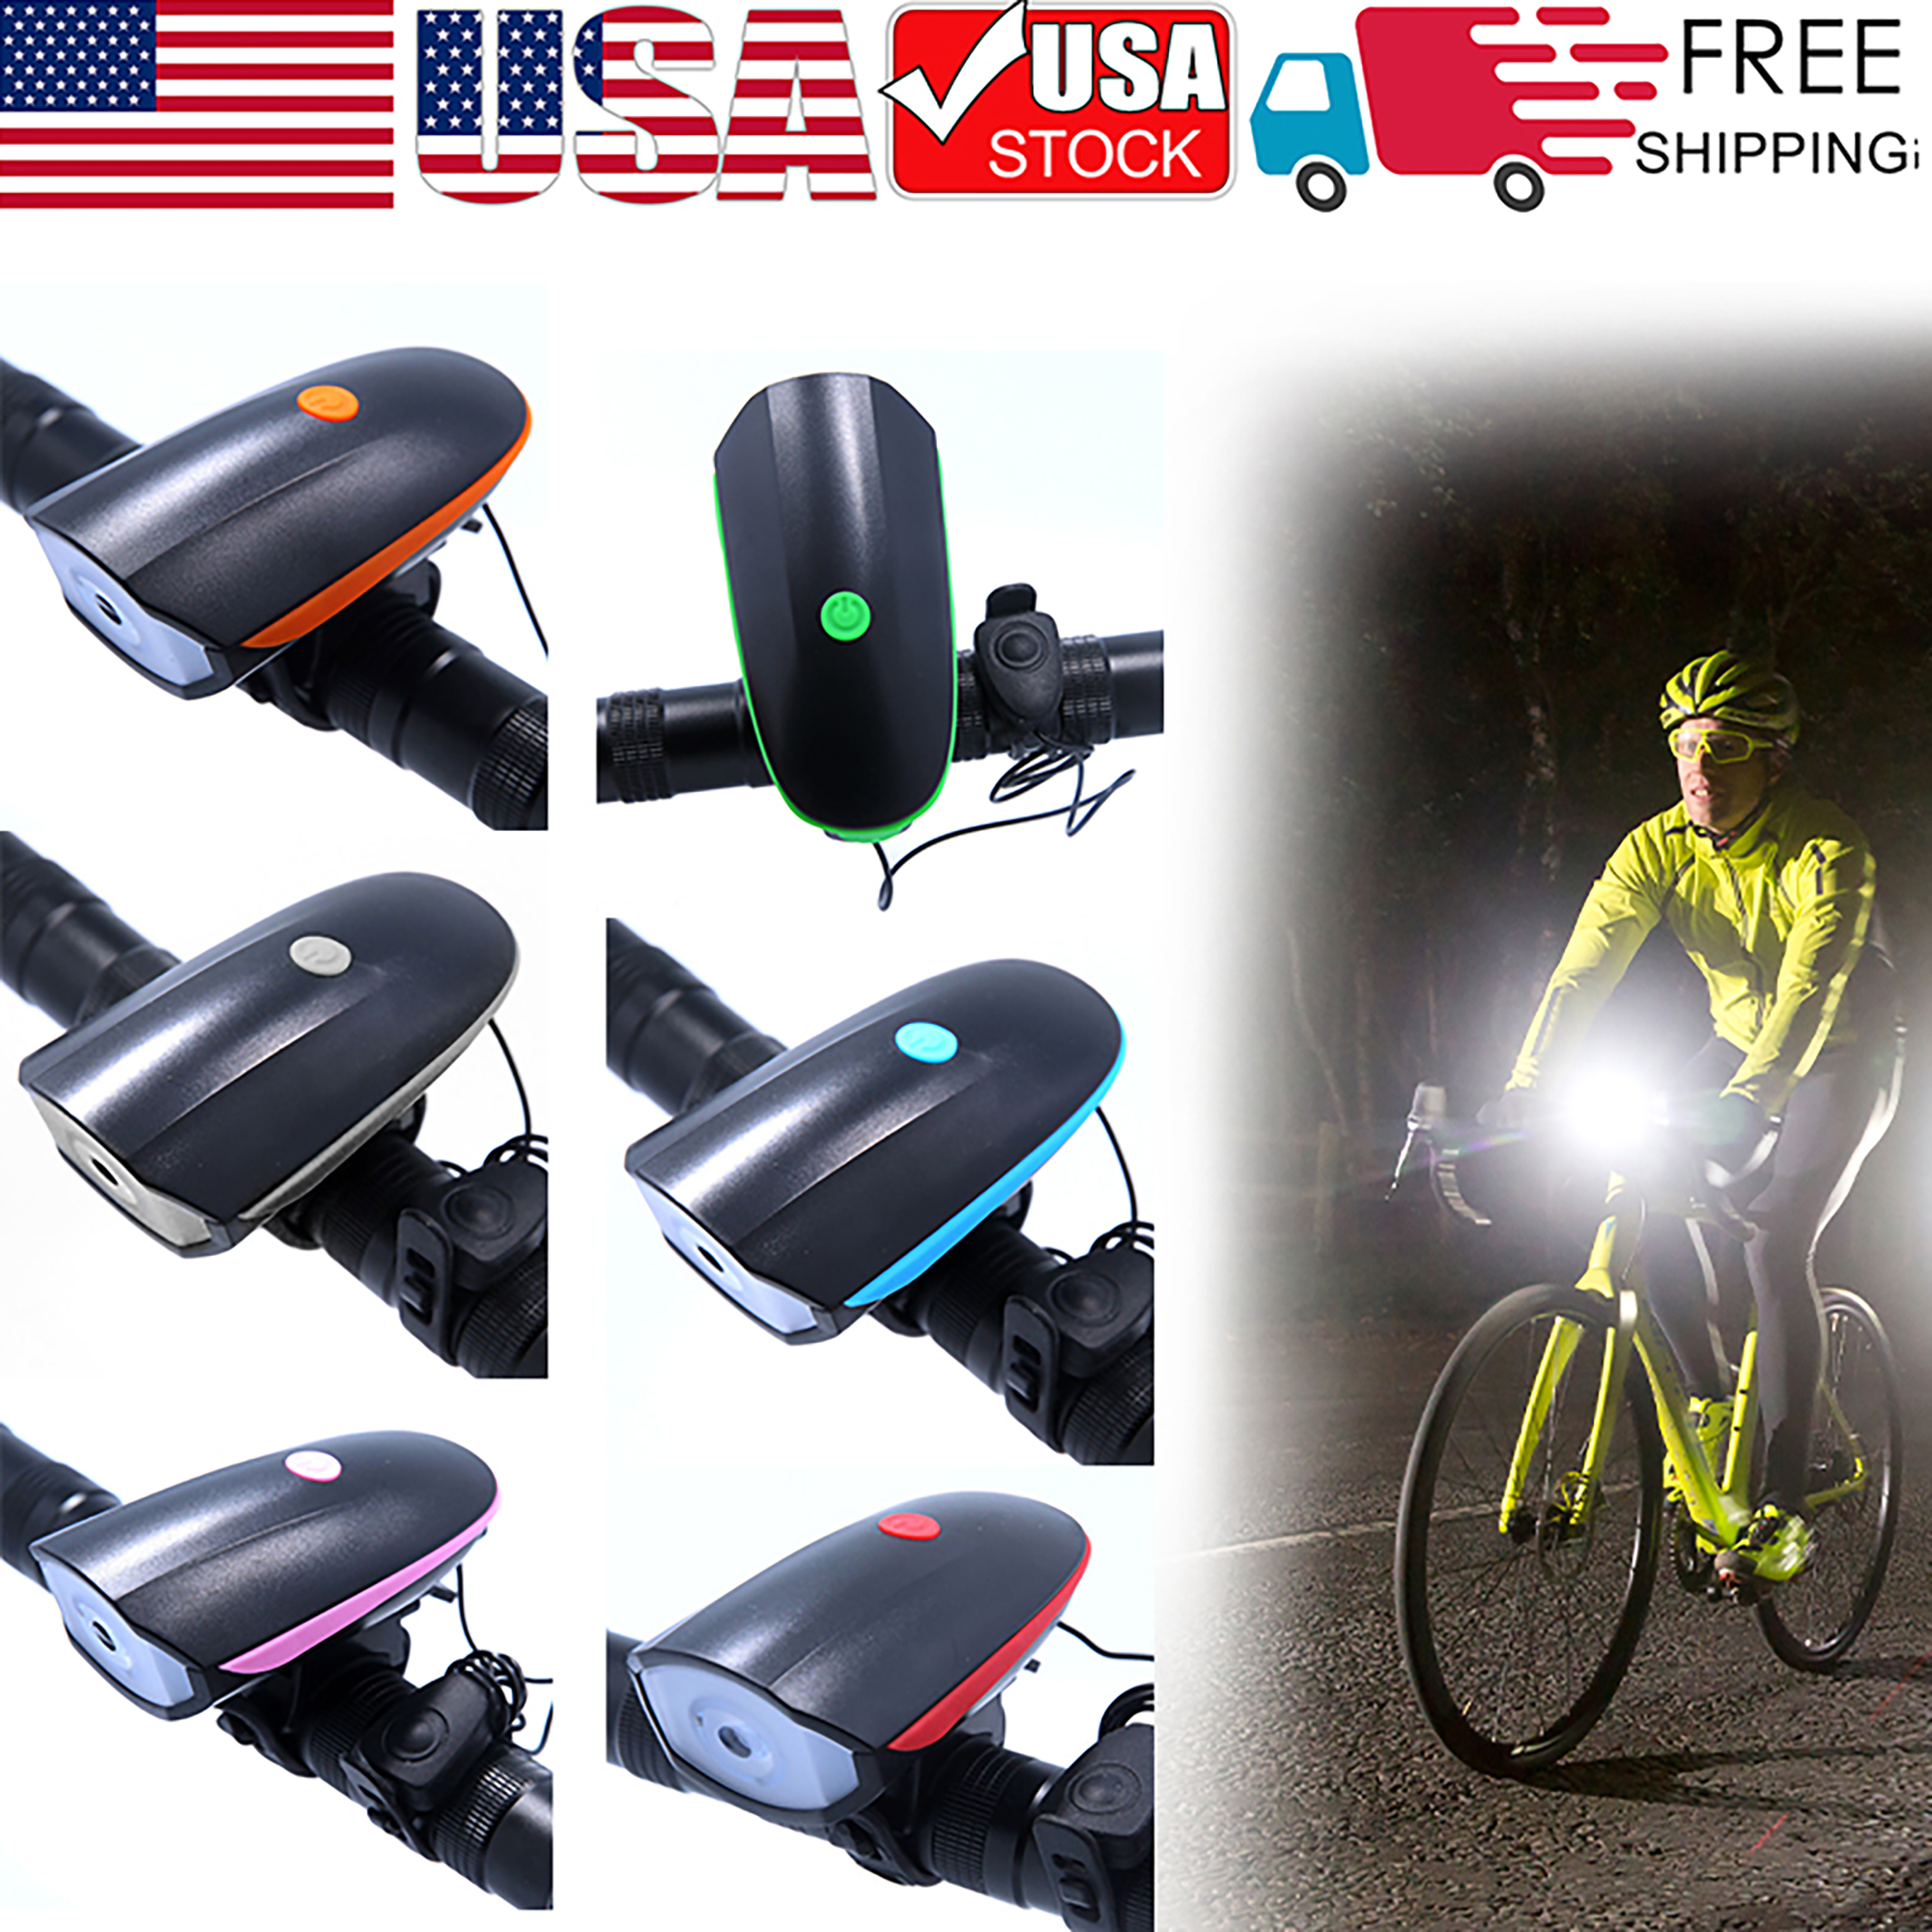 Bicycle Light USB Rechargeable Cycling Electric Horn Bell Handlebar Headlight